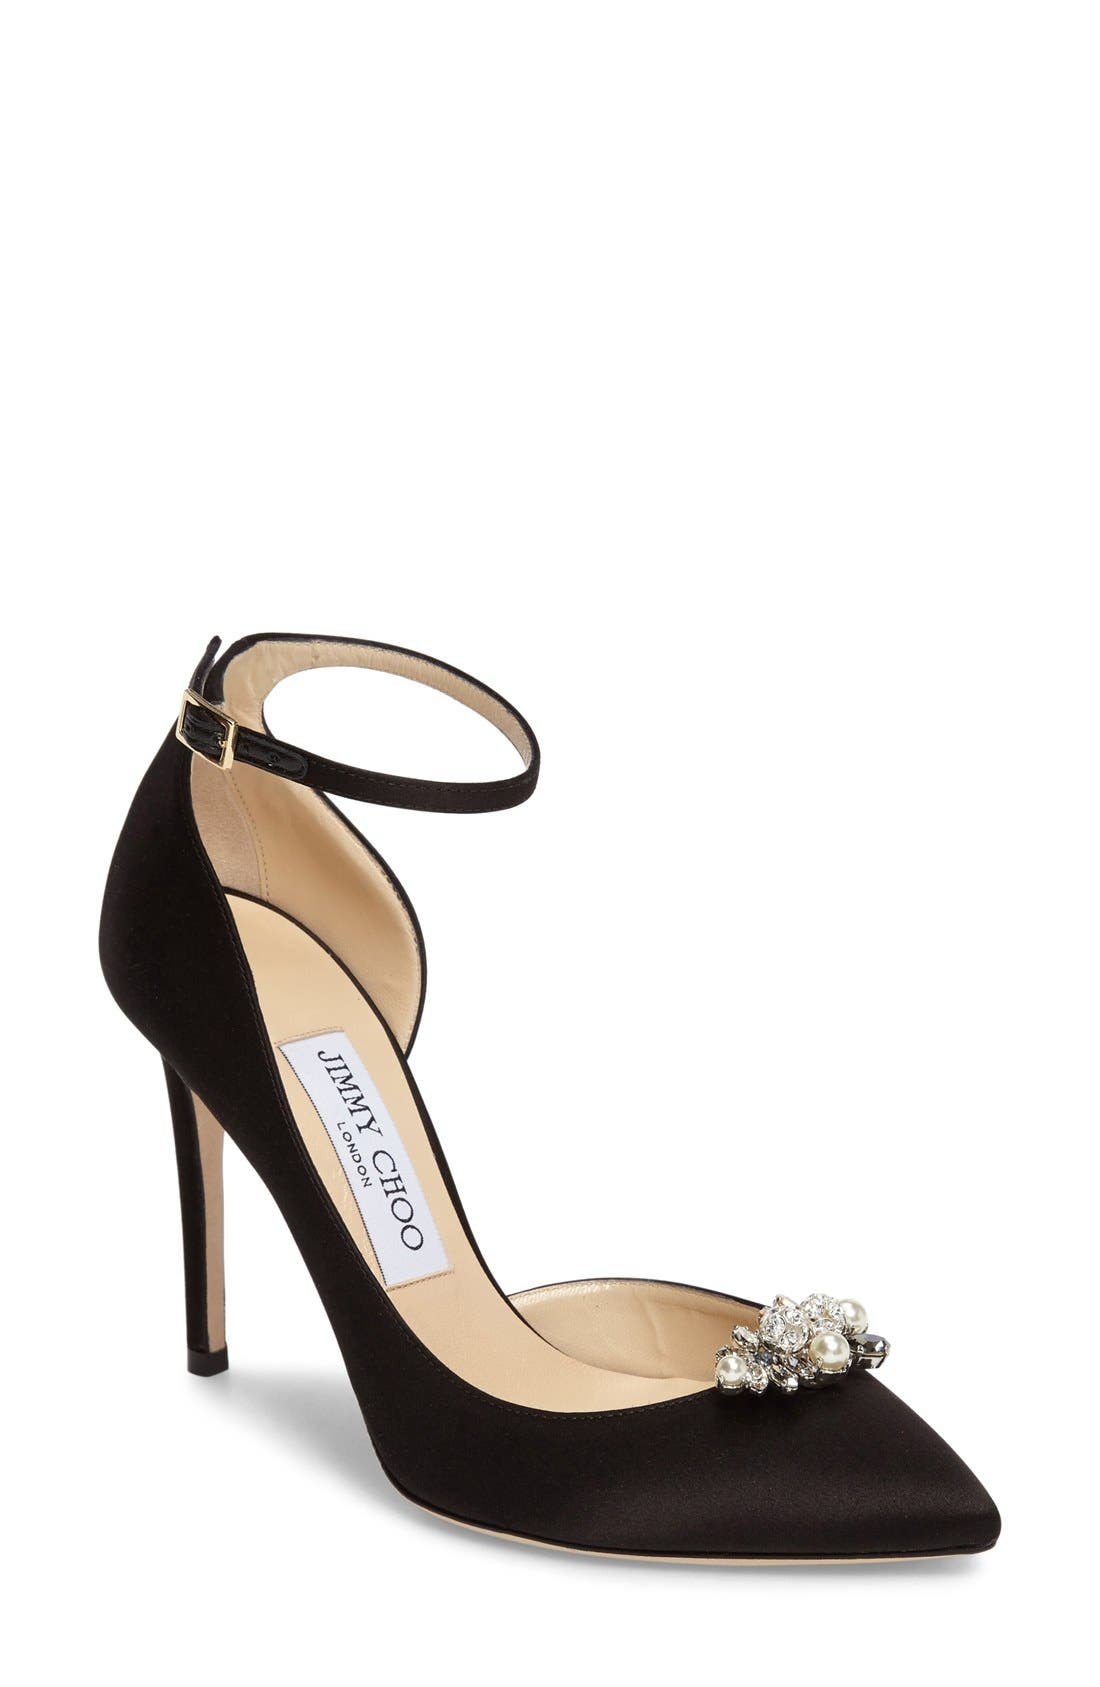 Alternate Image 1 Selected - Jimmy Choo Rose d'Orsay Pump with Jeweled Clip (Women)